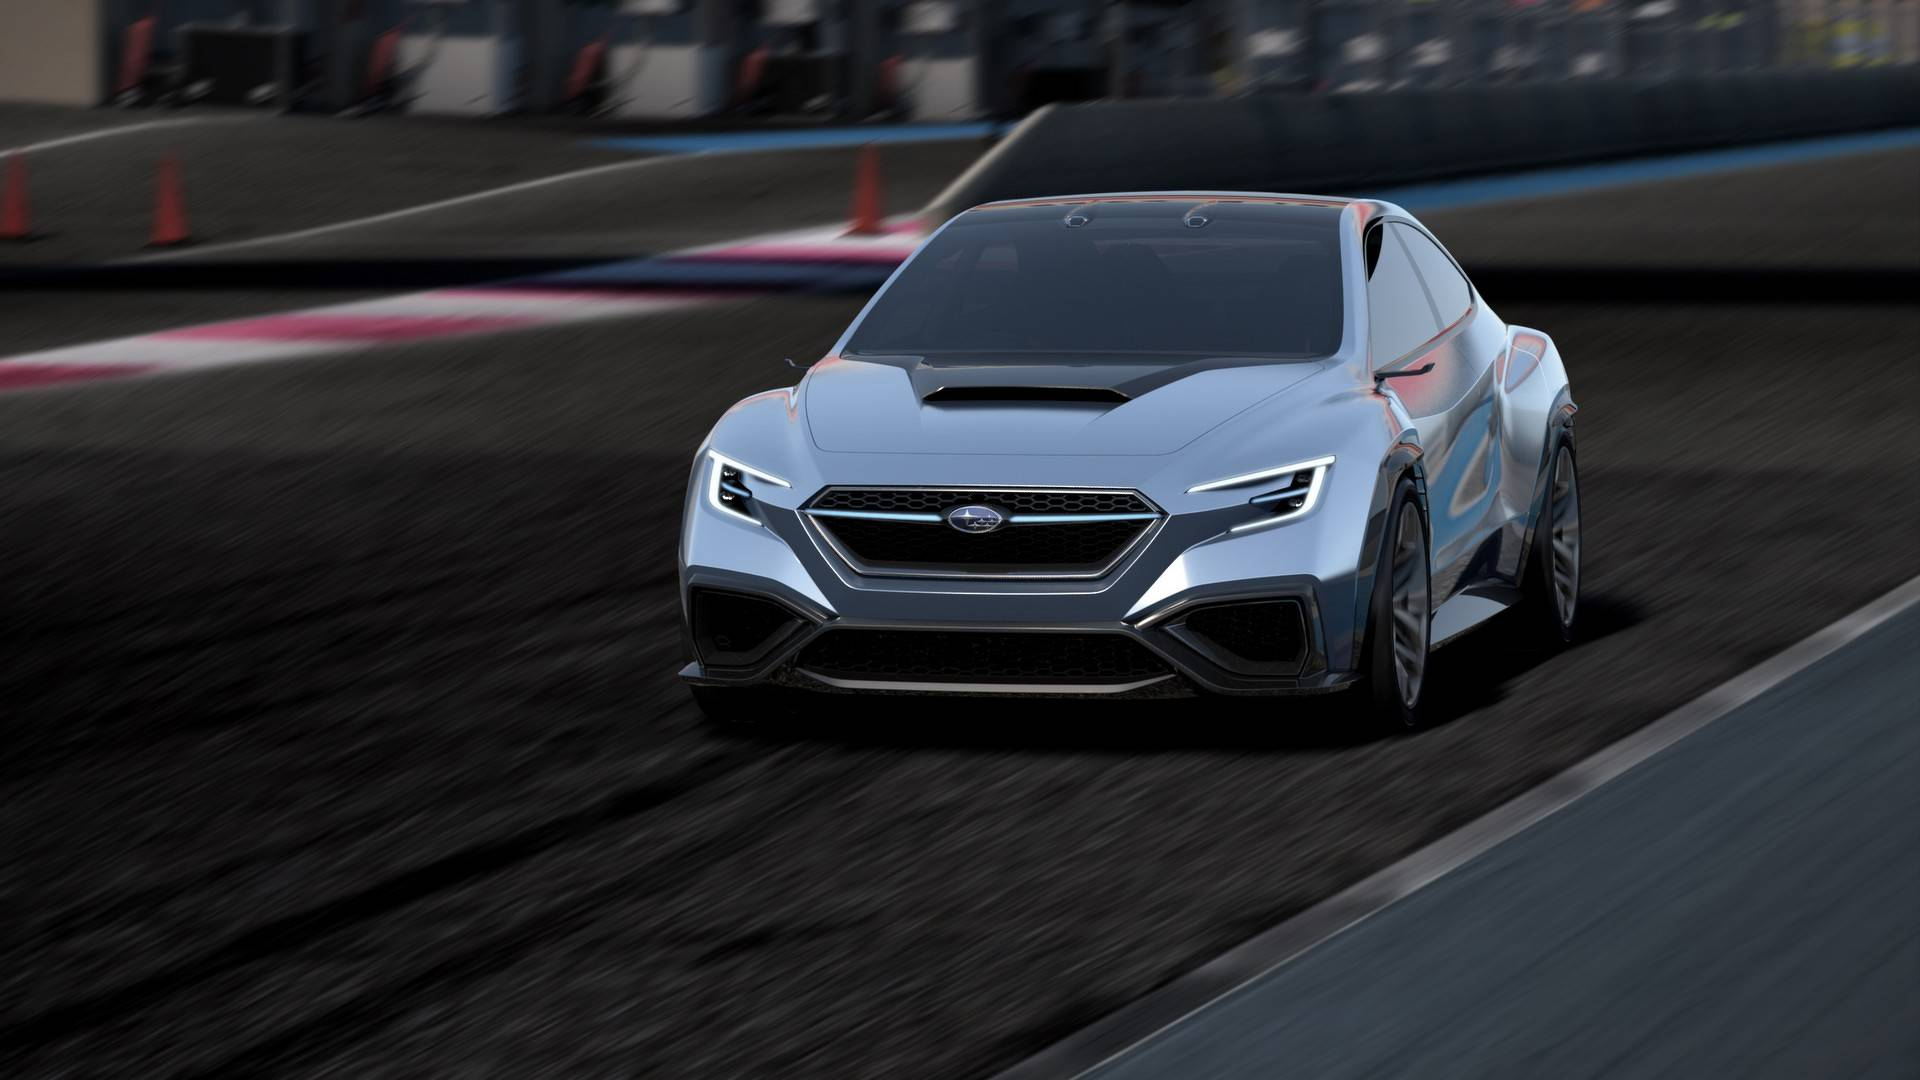 2021 Subaru WRX STI, Hatchback, Release Date, And Specs >> Subaru Wrx To Keep The Manual Gearbox Alive For Next Generation